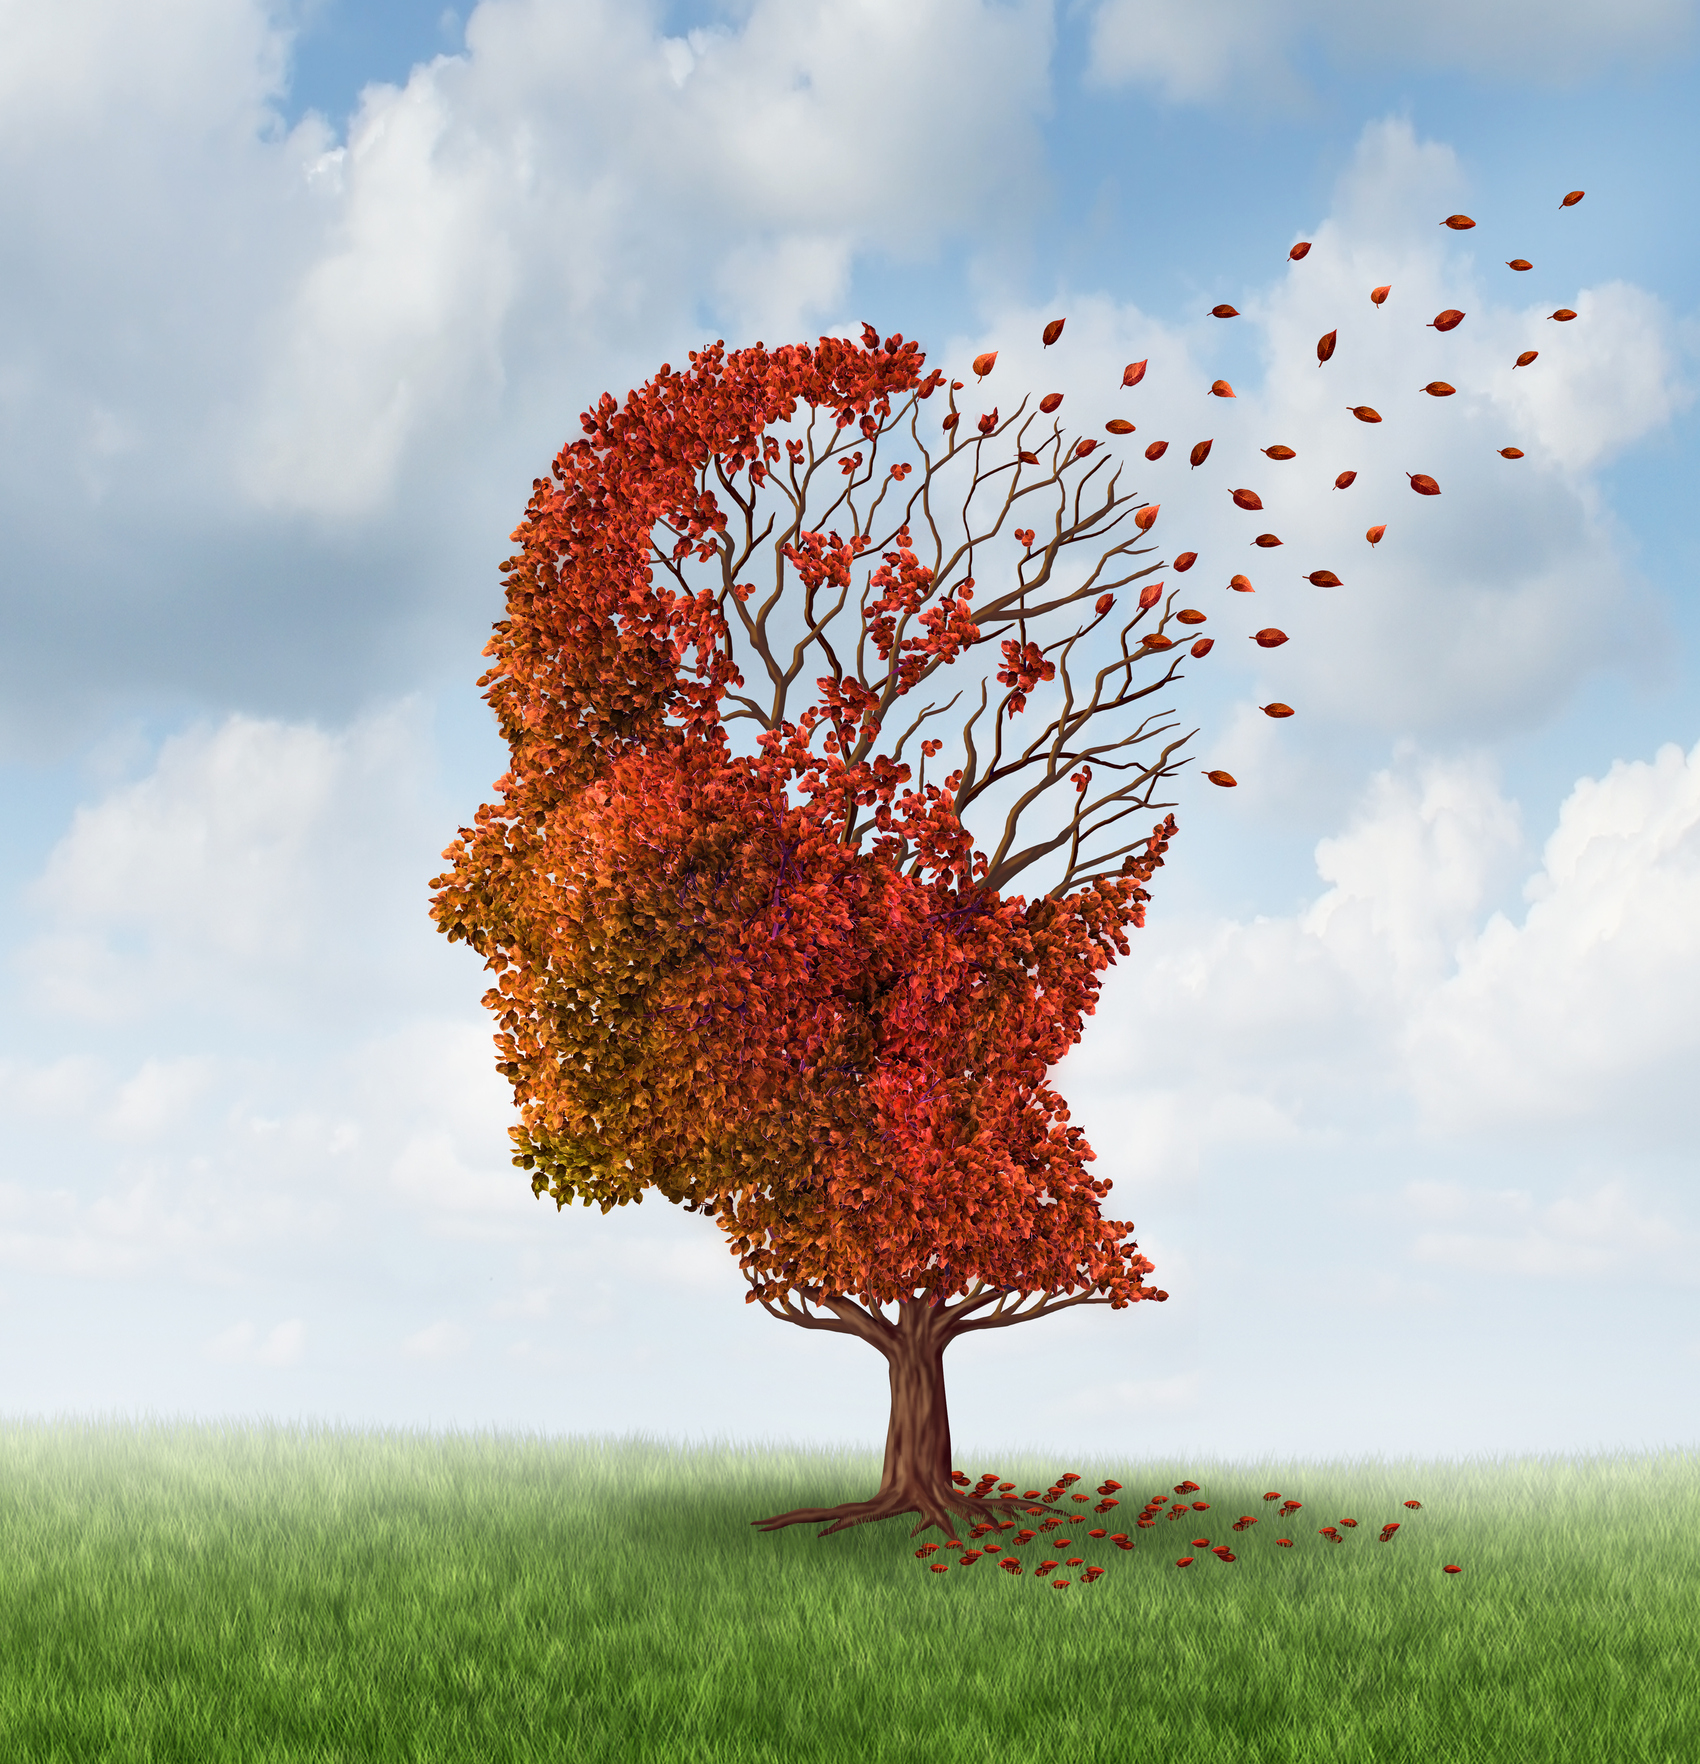 Concept of memory loss due to Alzheimer's disease or other dementia, autumn tree losing leaves